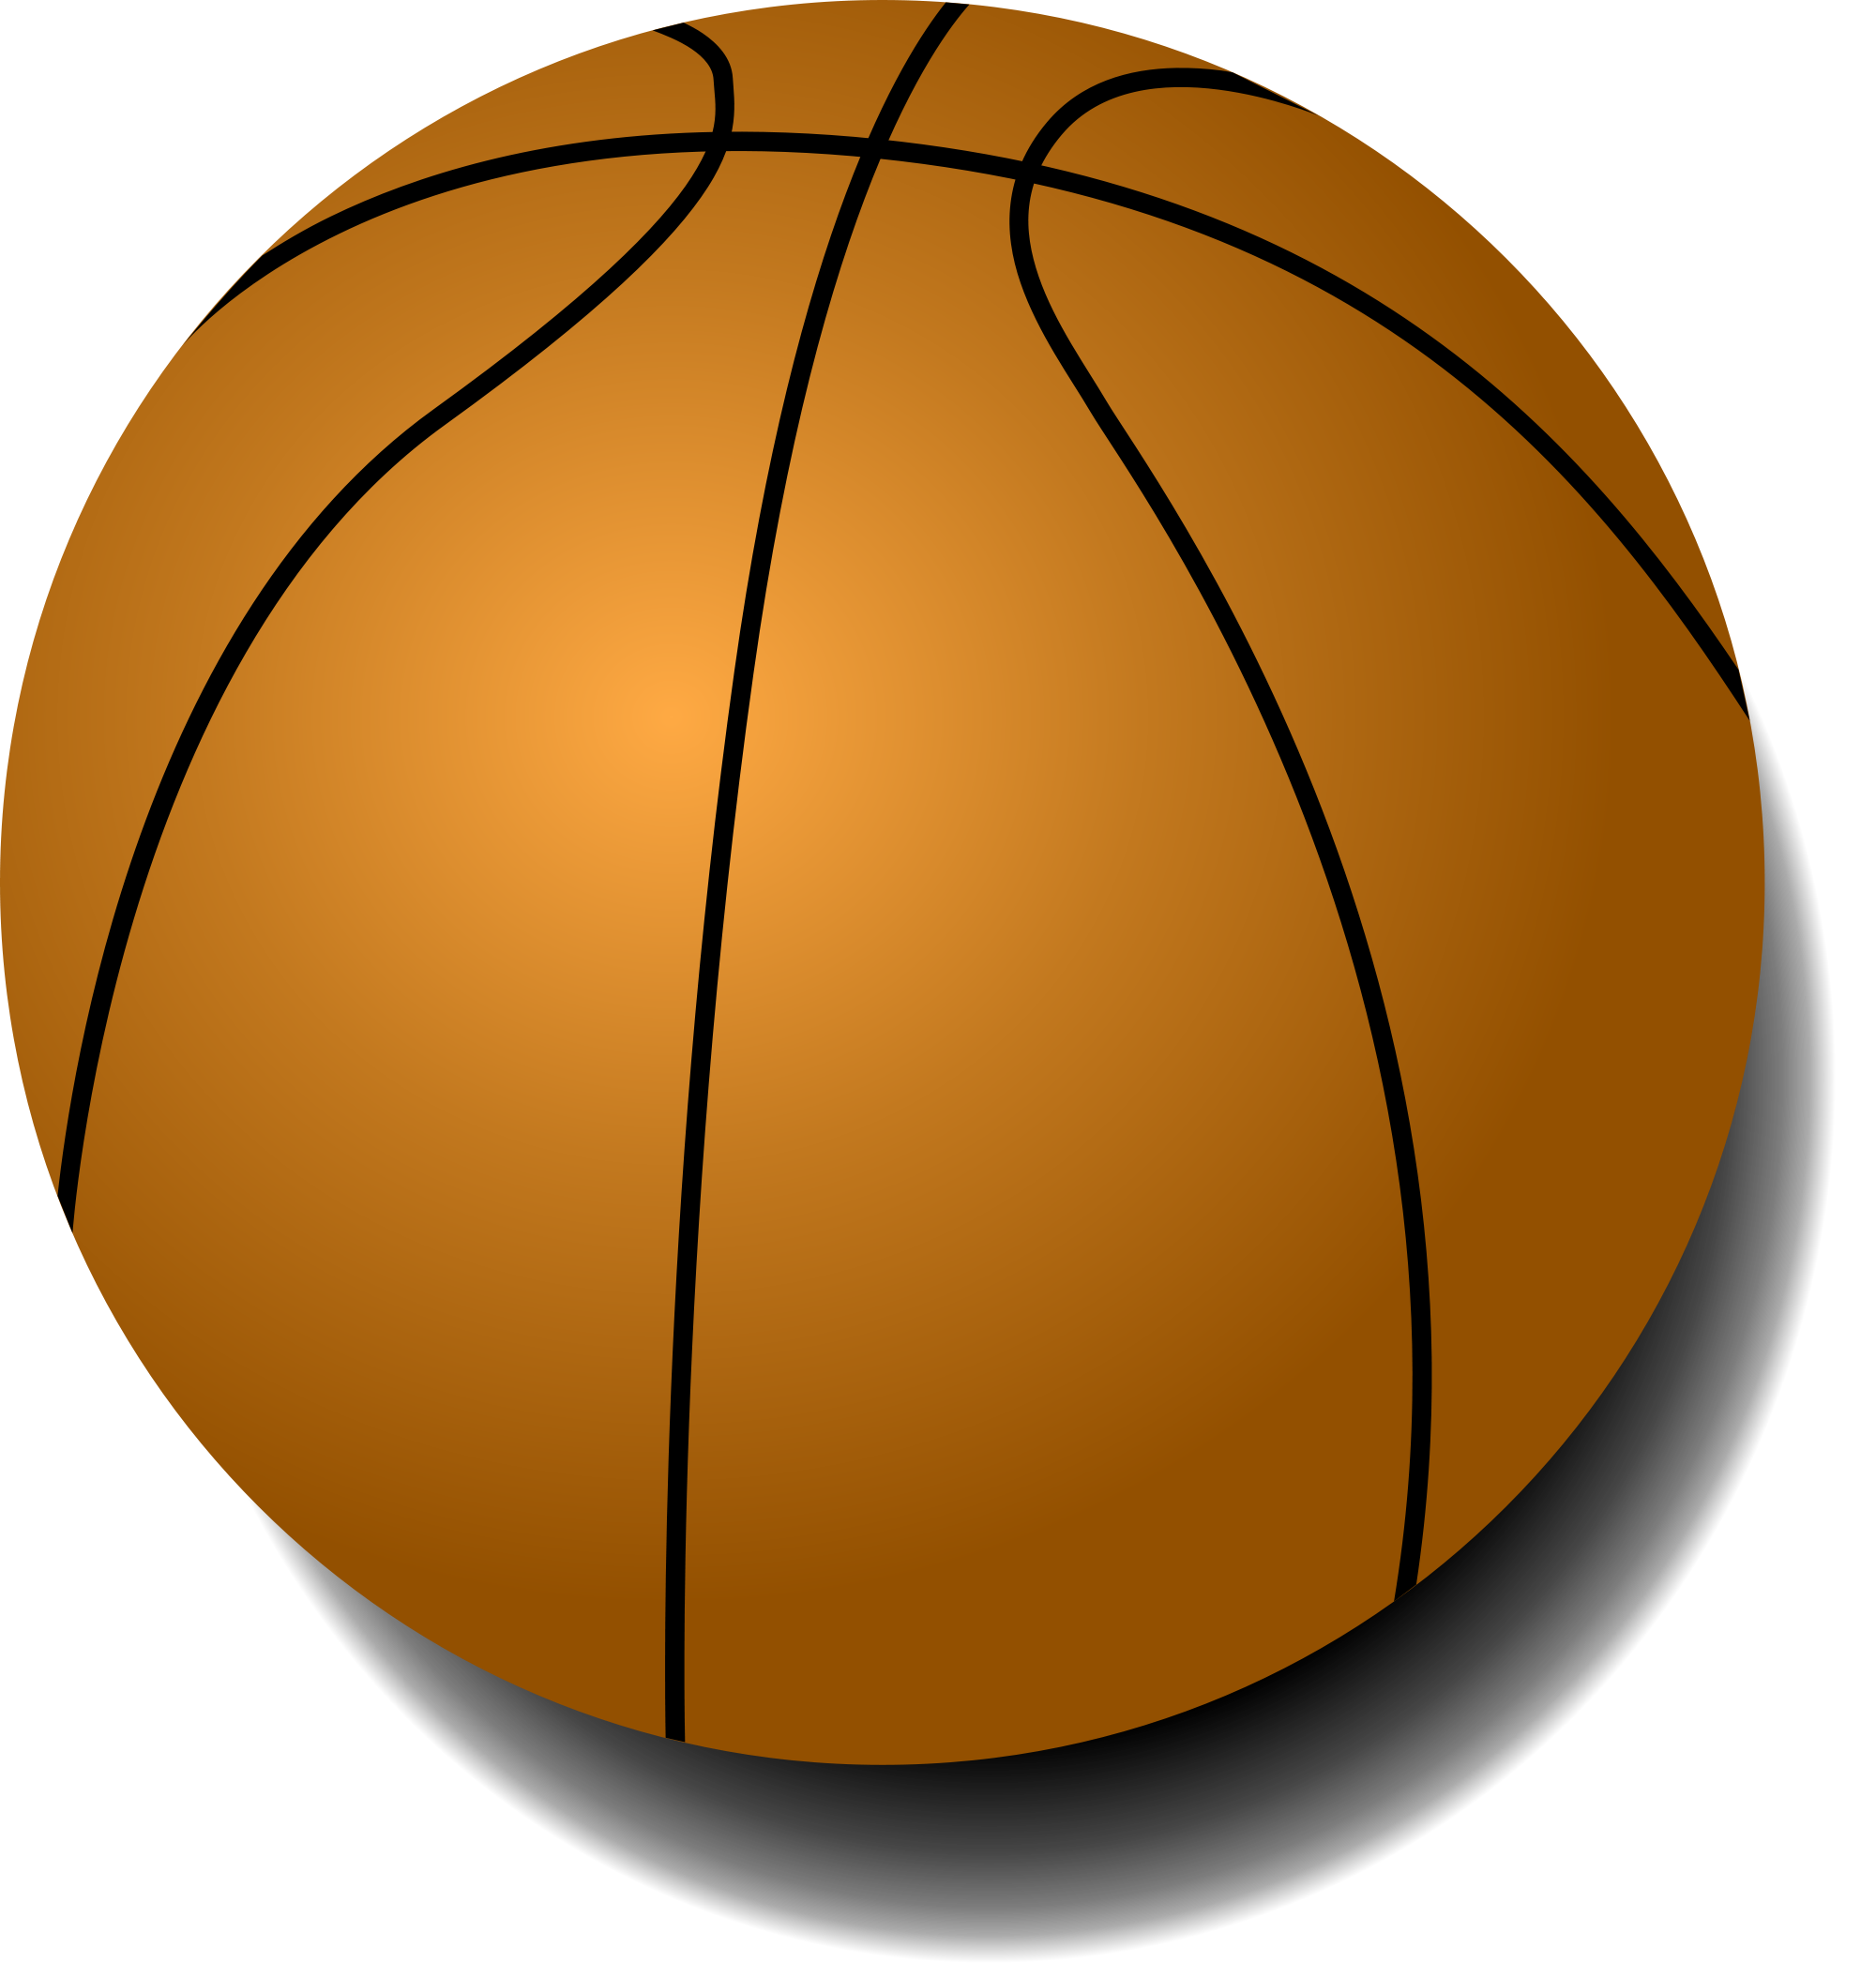 Basketball lines on ball clipart vector royalty free library File:Basketball ball.svg - Wikimedia Commons vector royalty free library